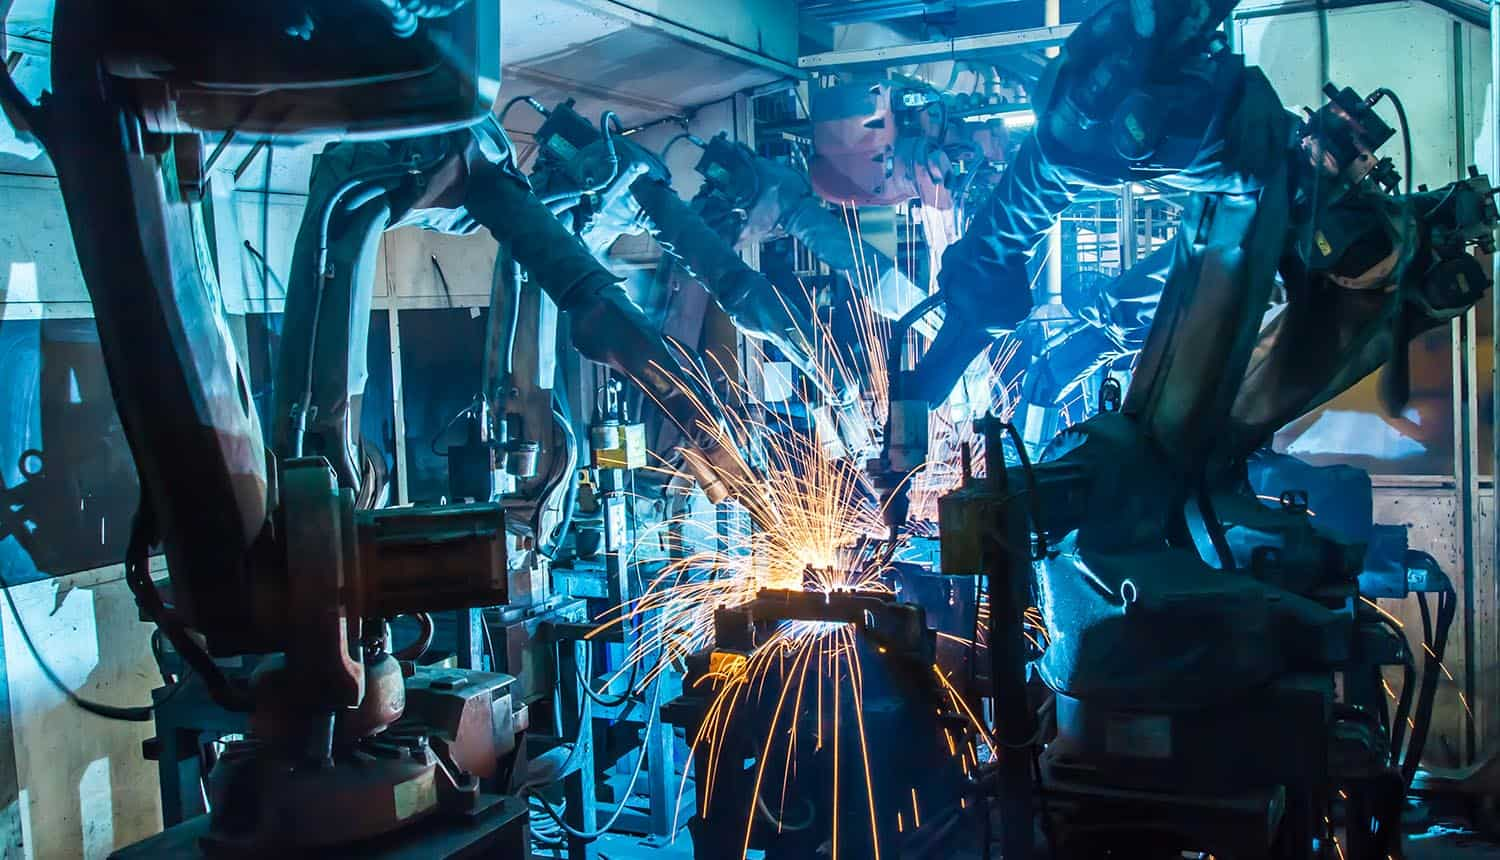 Robots welding movement in a car production factory showing IoT security and zero trust